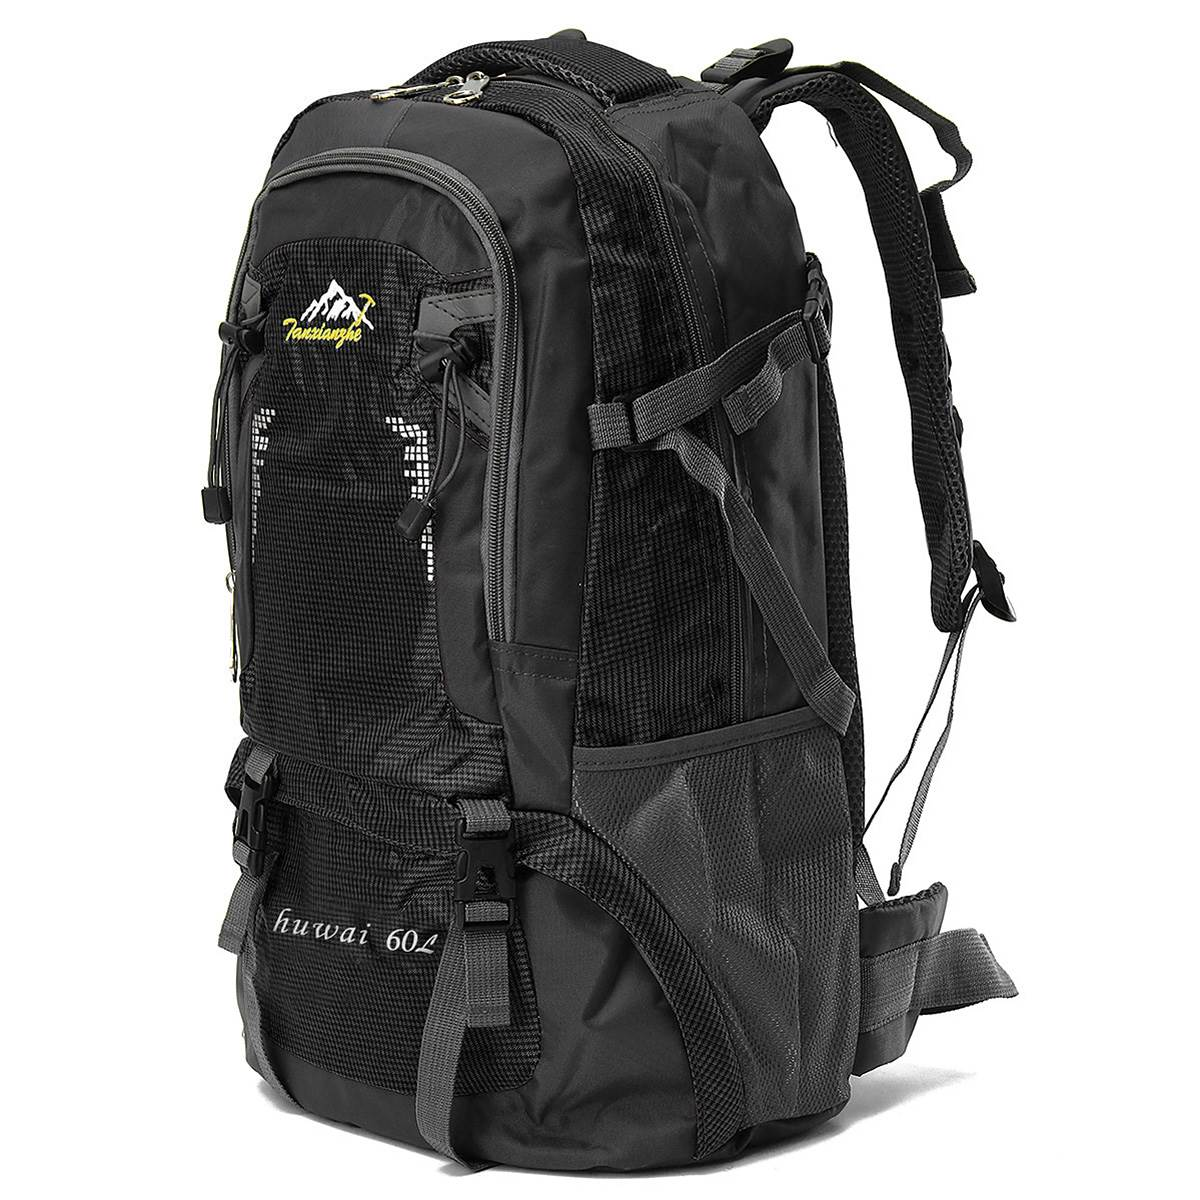 OUTERDO Waterproof Nylon MTB Cycling Sport Backpack Unisex Wearable Bike Backpack Bicycle Large Capacity Bags Accessories 15l large capacity unisex waterproof nylon cycling bag mtb bike sports running backpack outdoor hiking sports backpack paquete